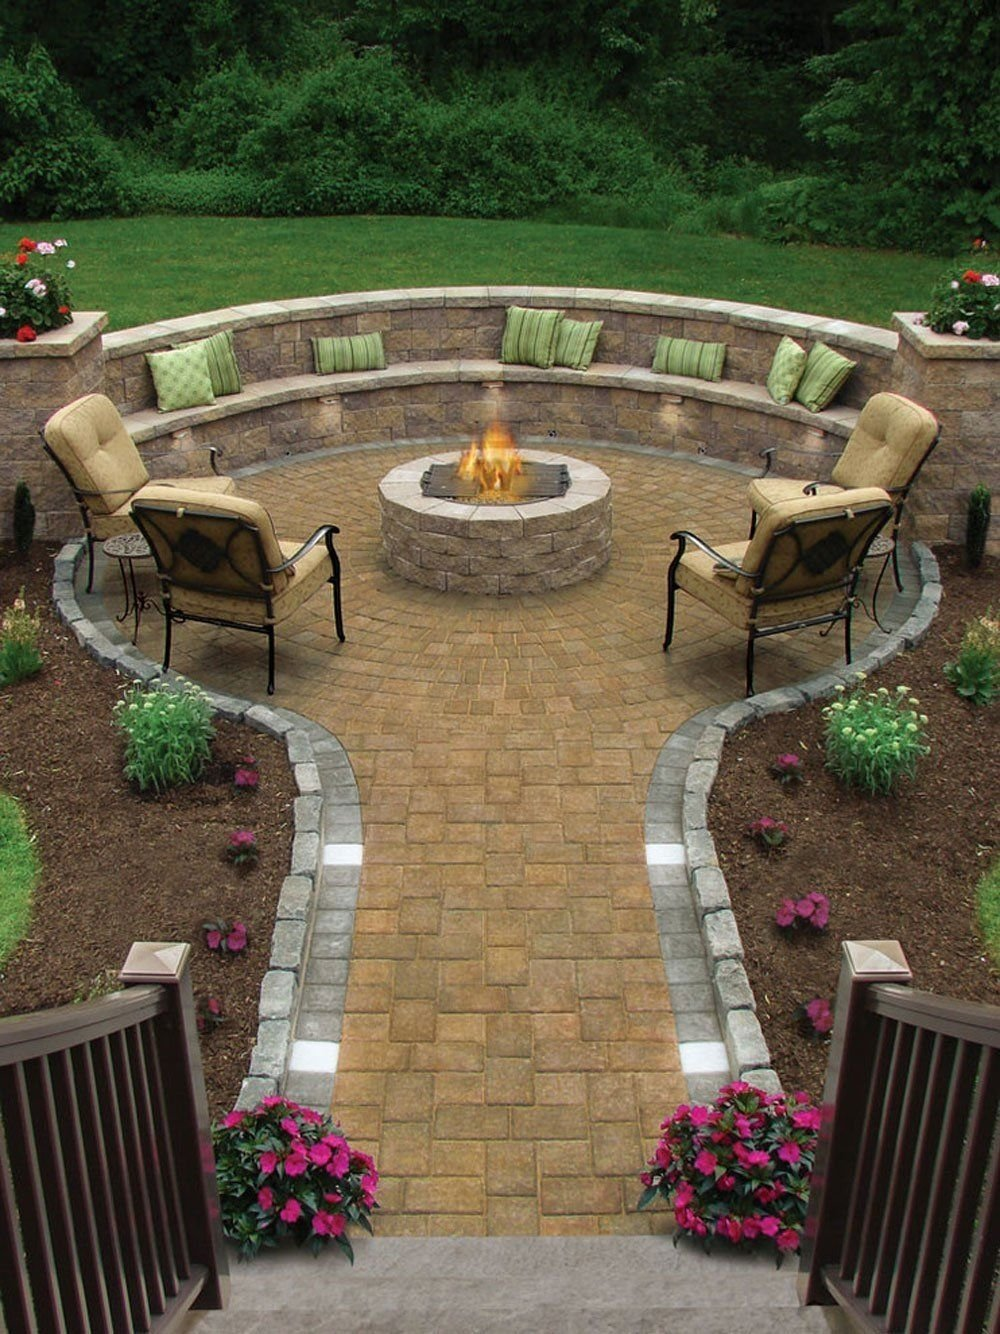 10 Lovely Patio Ideas With Fire Pit 17 of the most amazing seating area around the fire pit ever 1